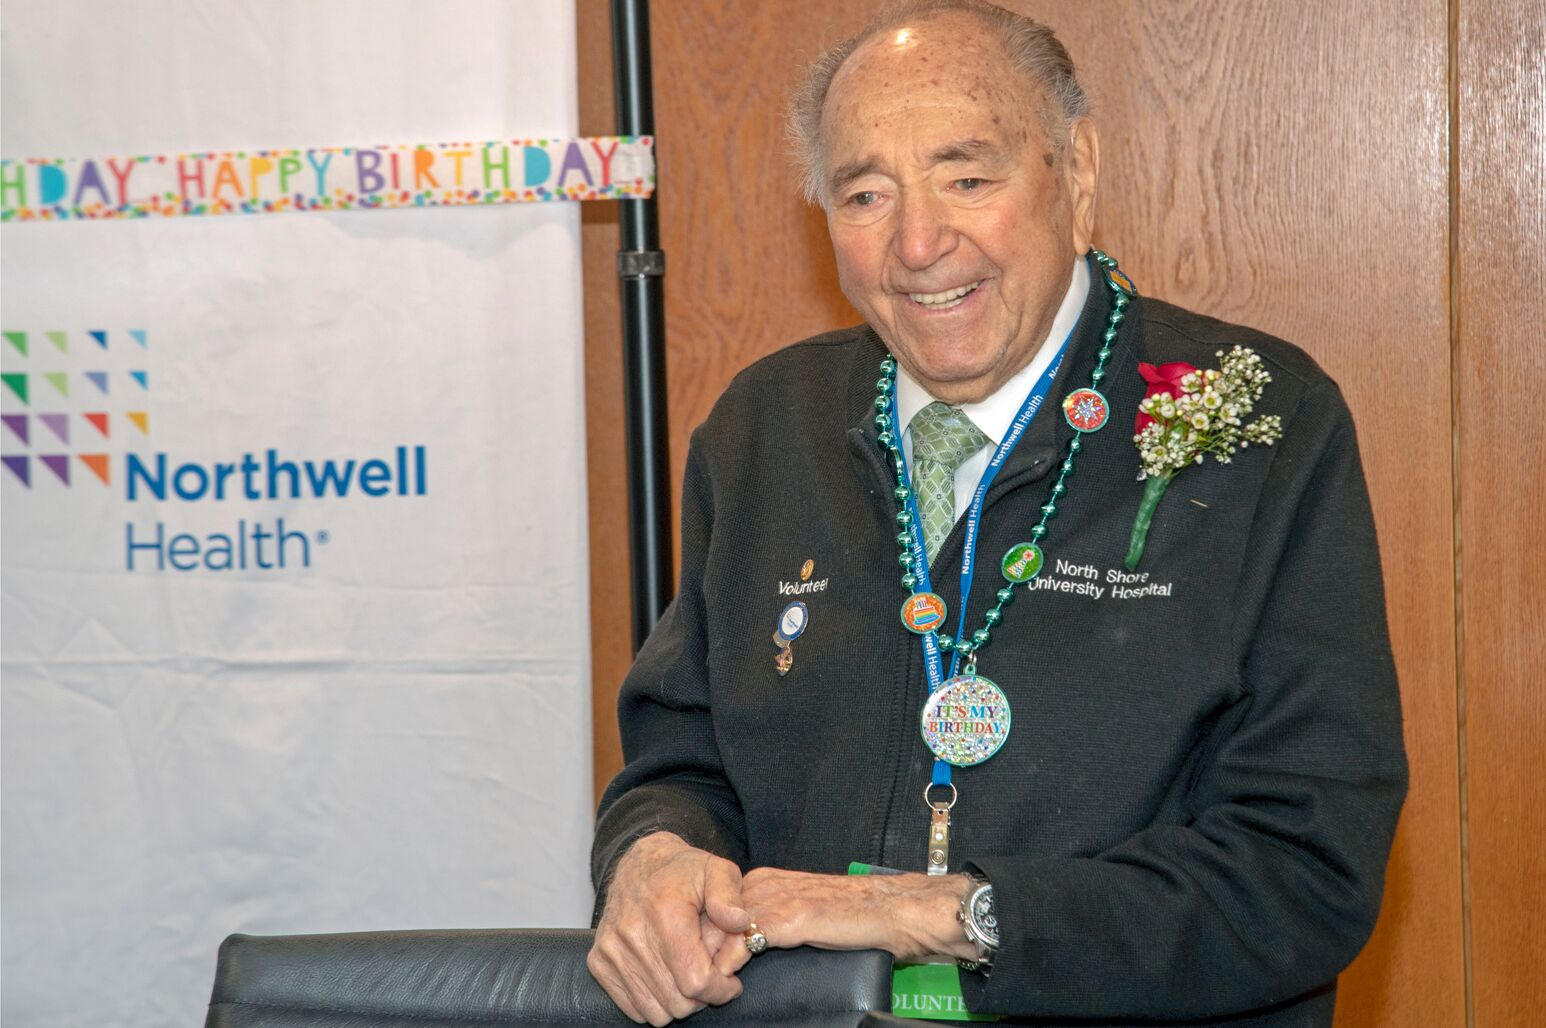 Arthur Seidman turned 102 on February 28. He has volunteered at North Shore University Hospital for 23 years.